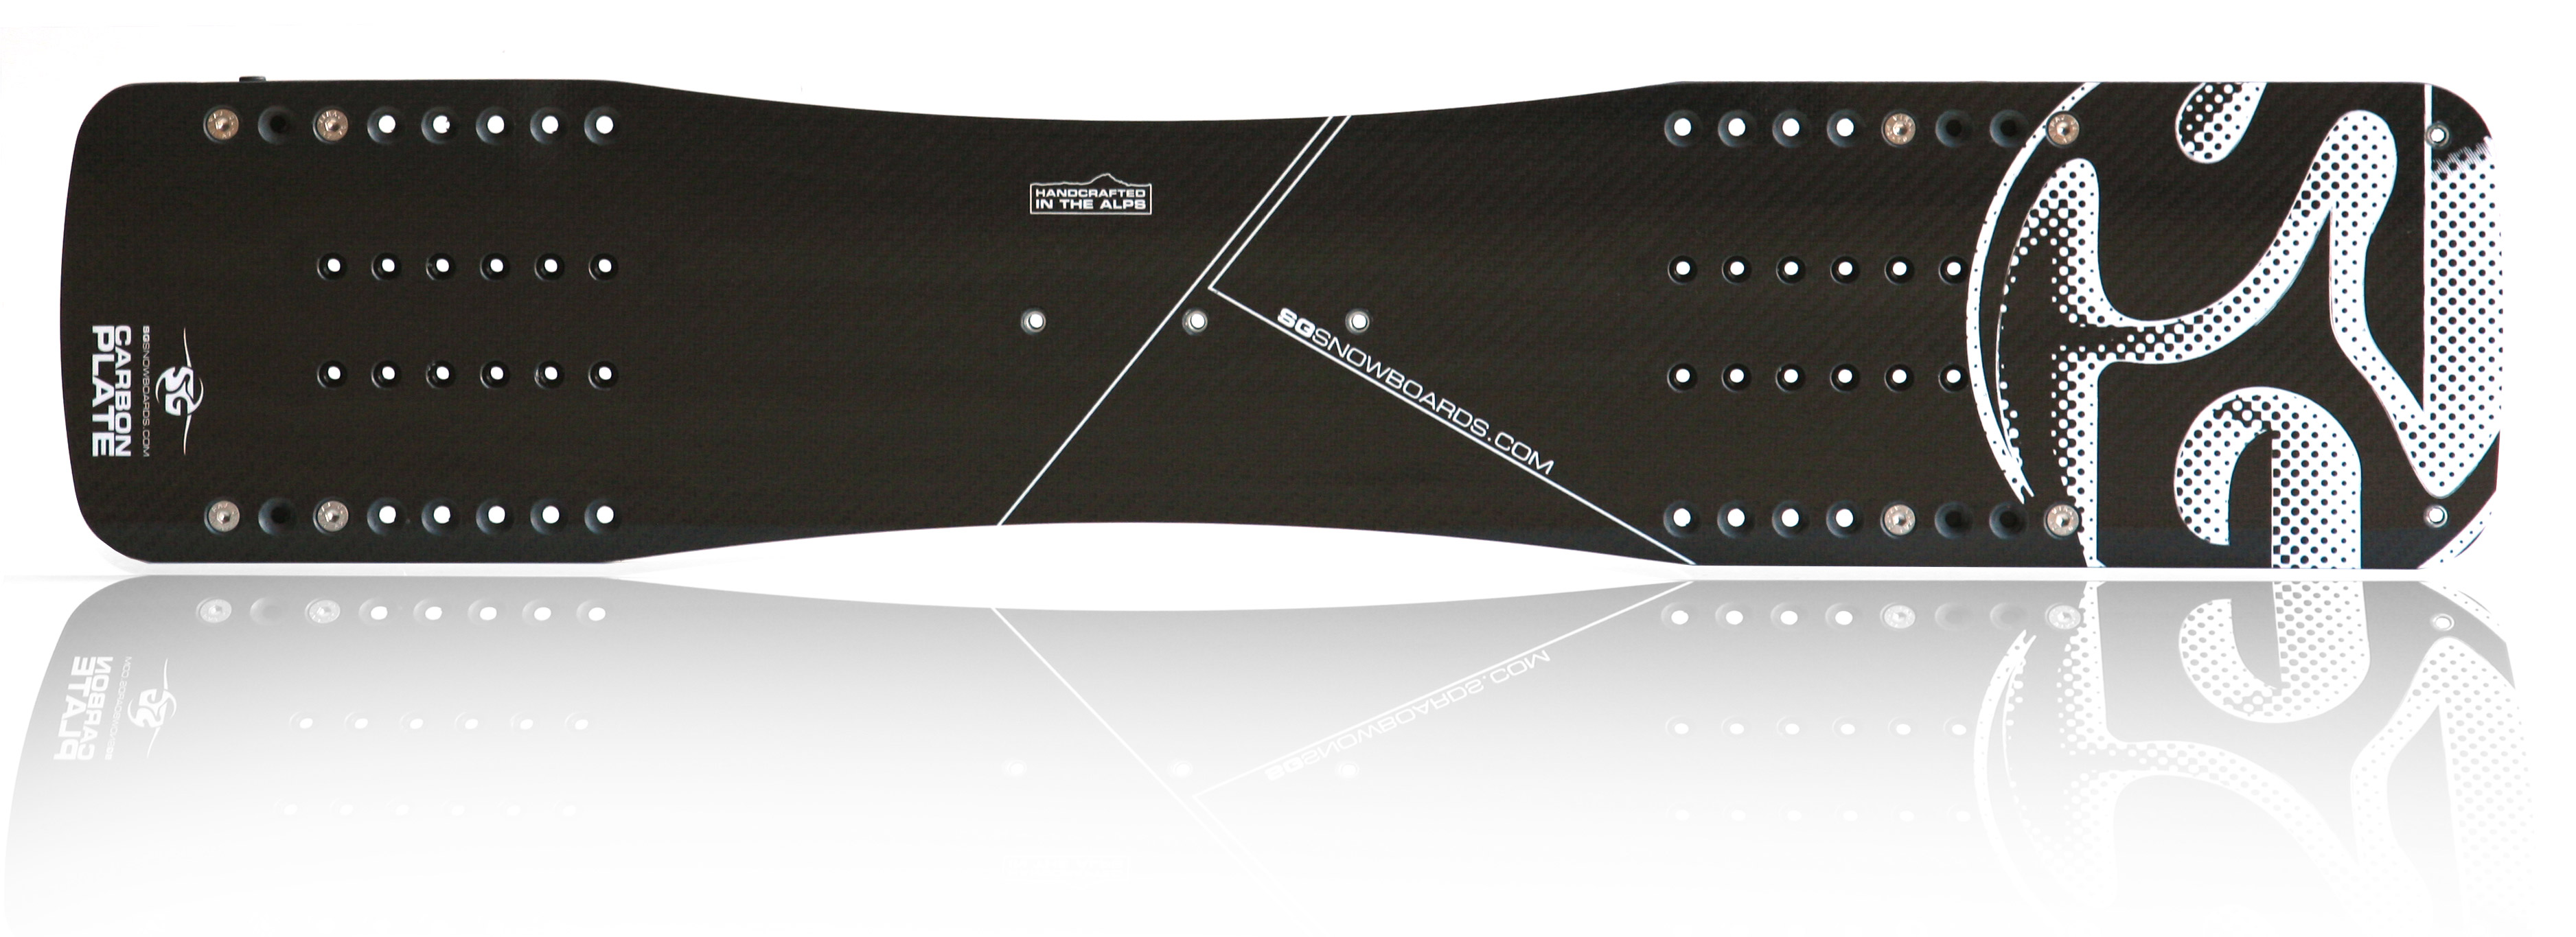 SG SNOWBOARDS Carbon Plate System